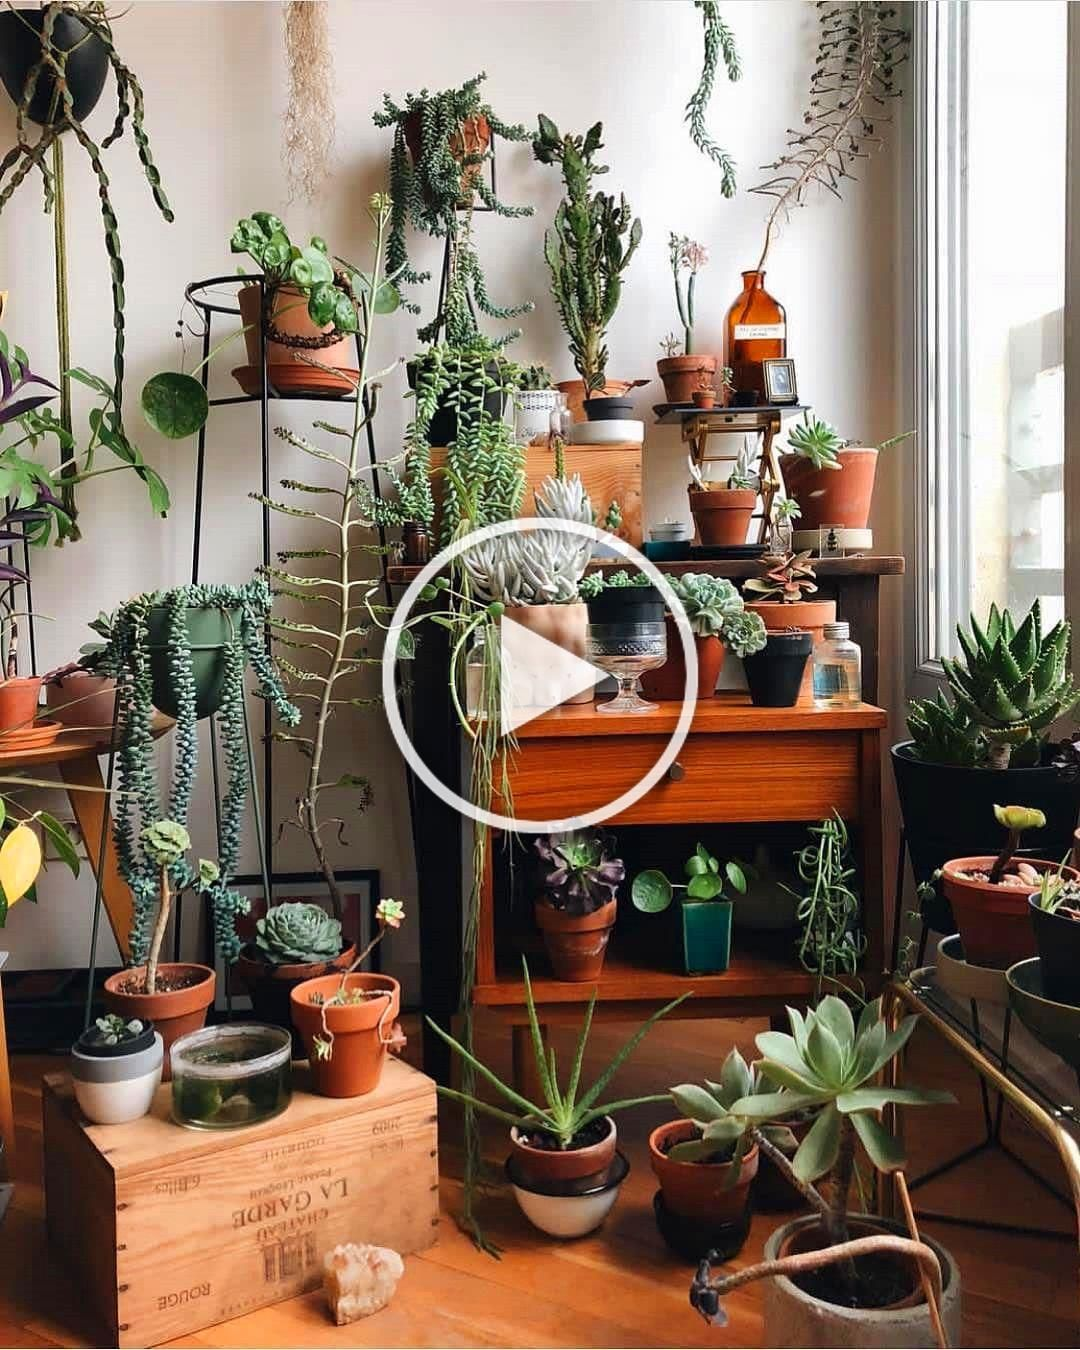 80 DIY Plant Stand Ideas To Fill Your Room With Greenery ... on Amazing Plant Stand Ideas  id=92655